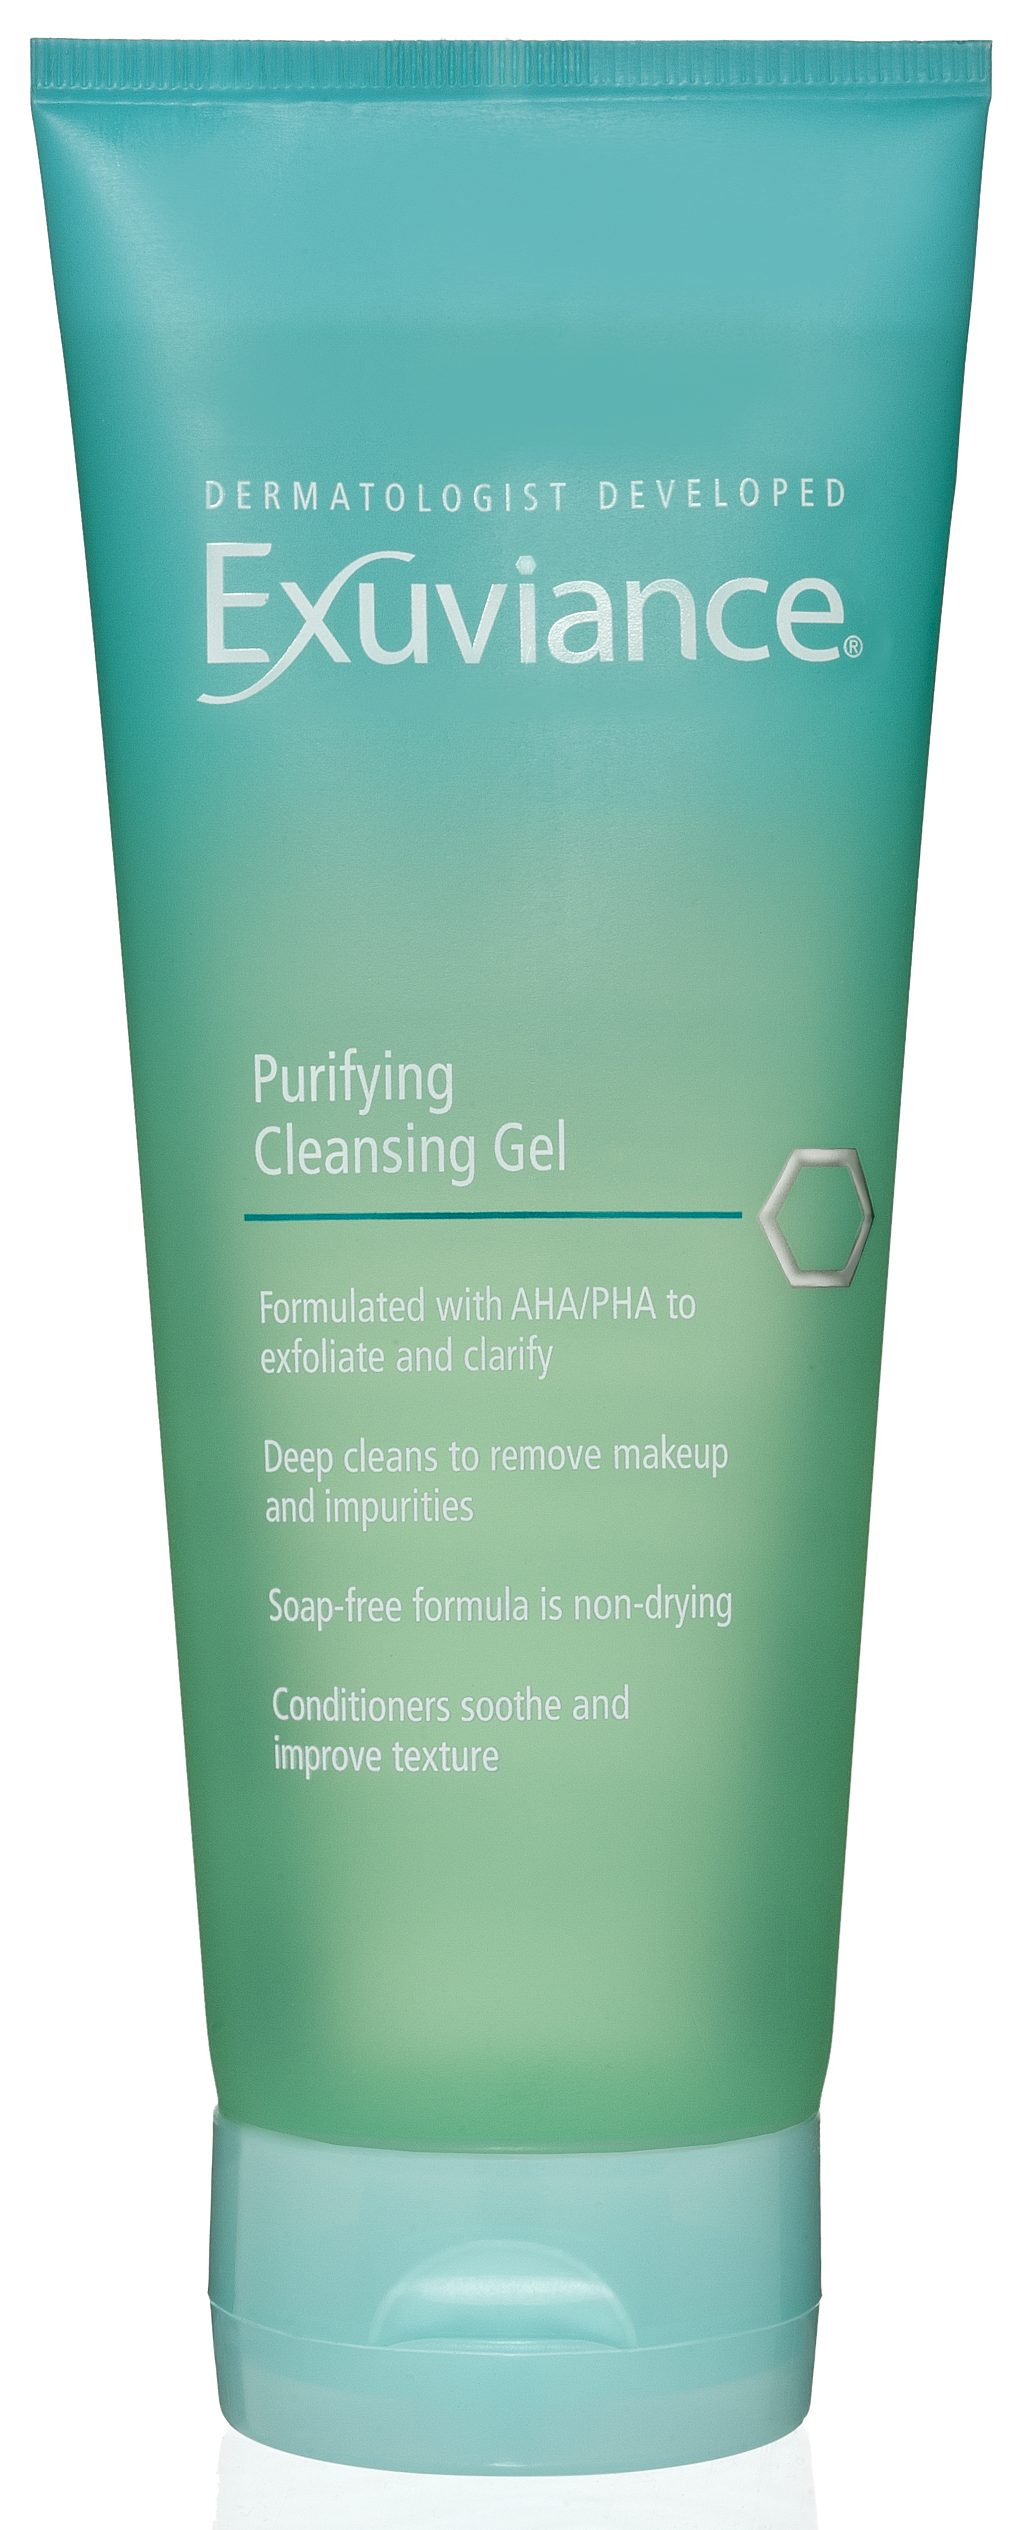 Purifying Cleansing exuviance